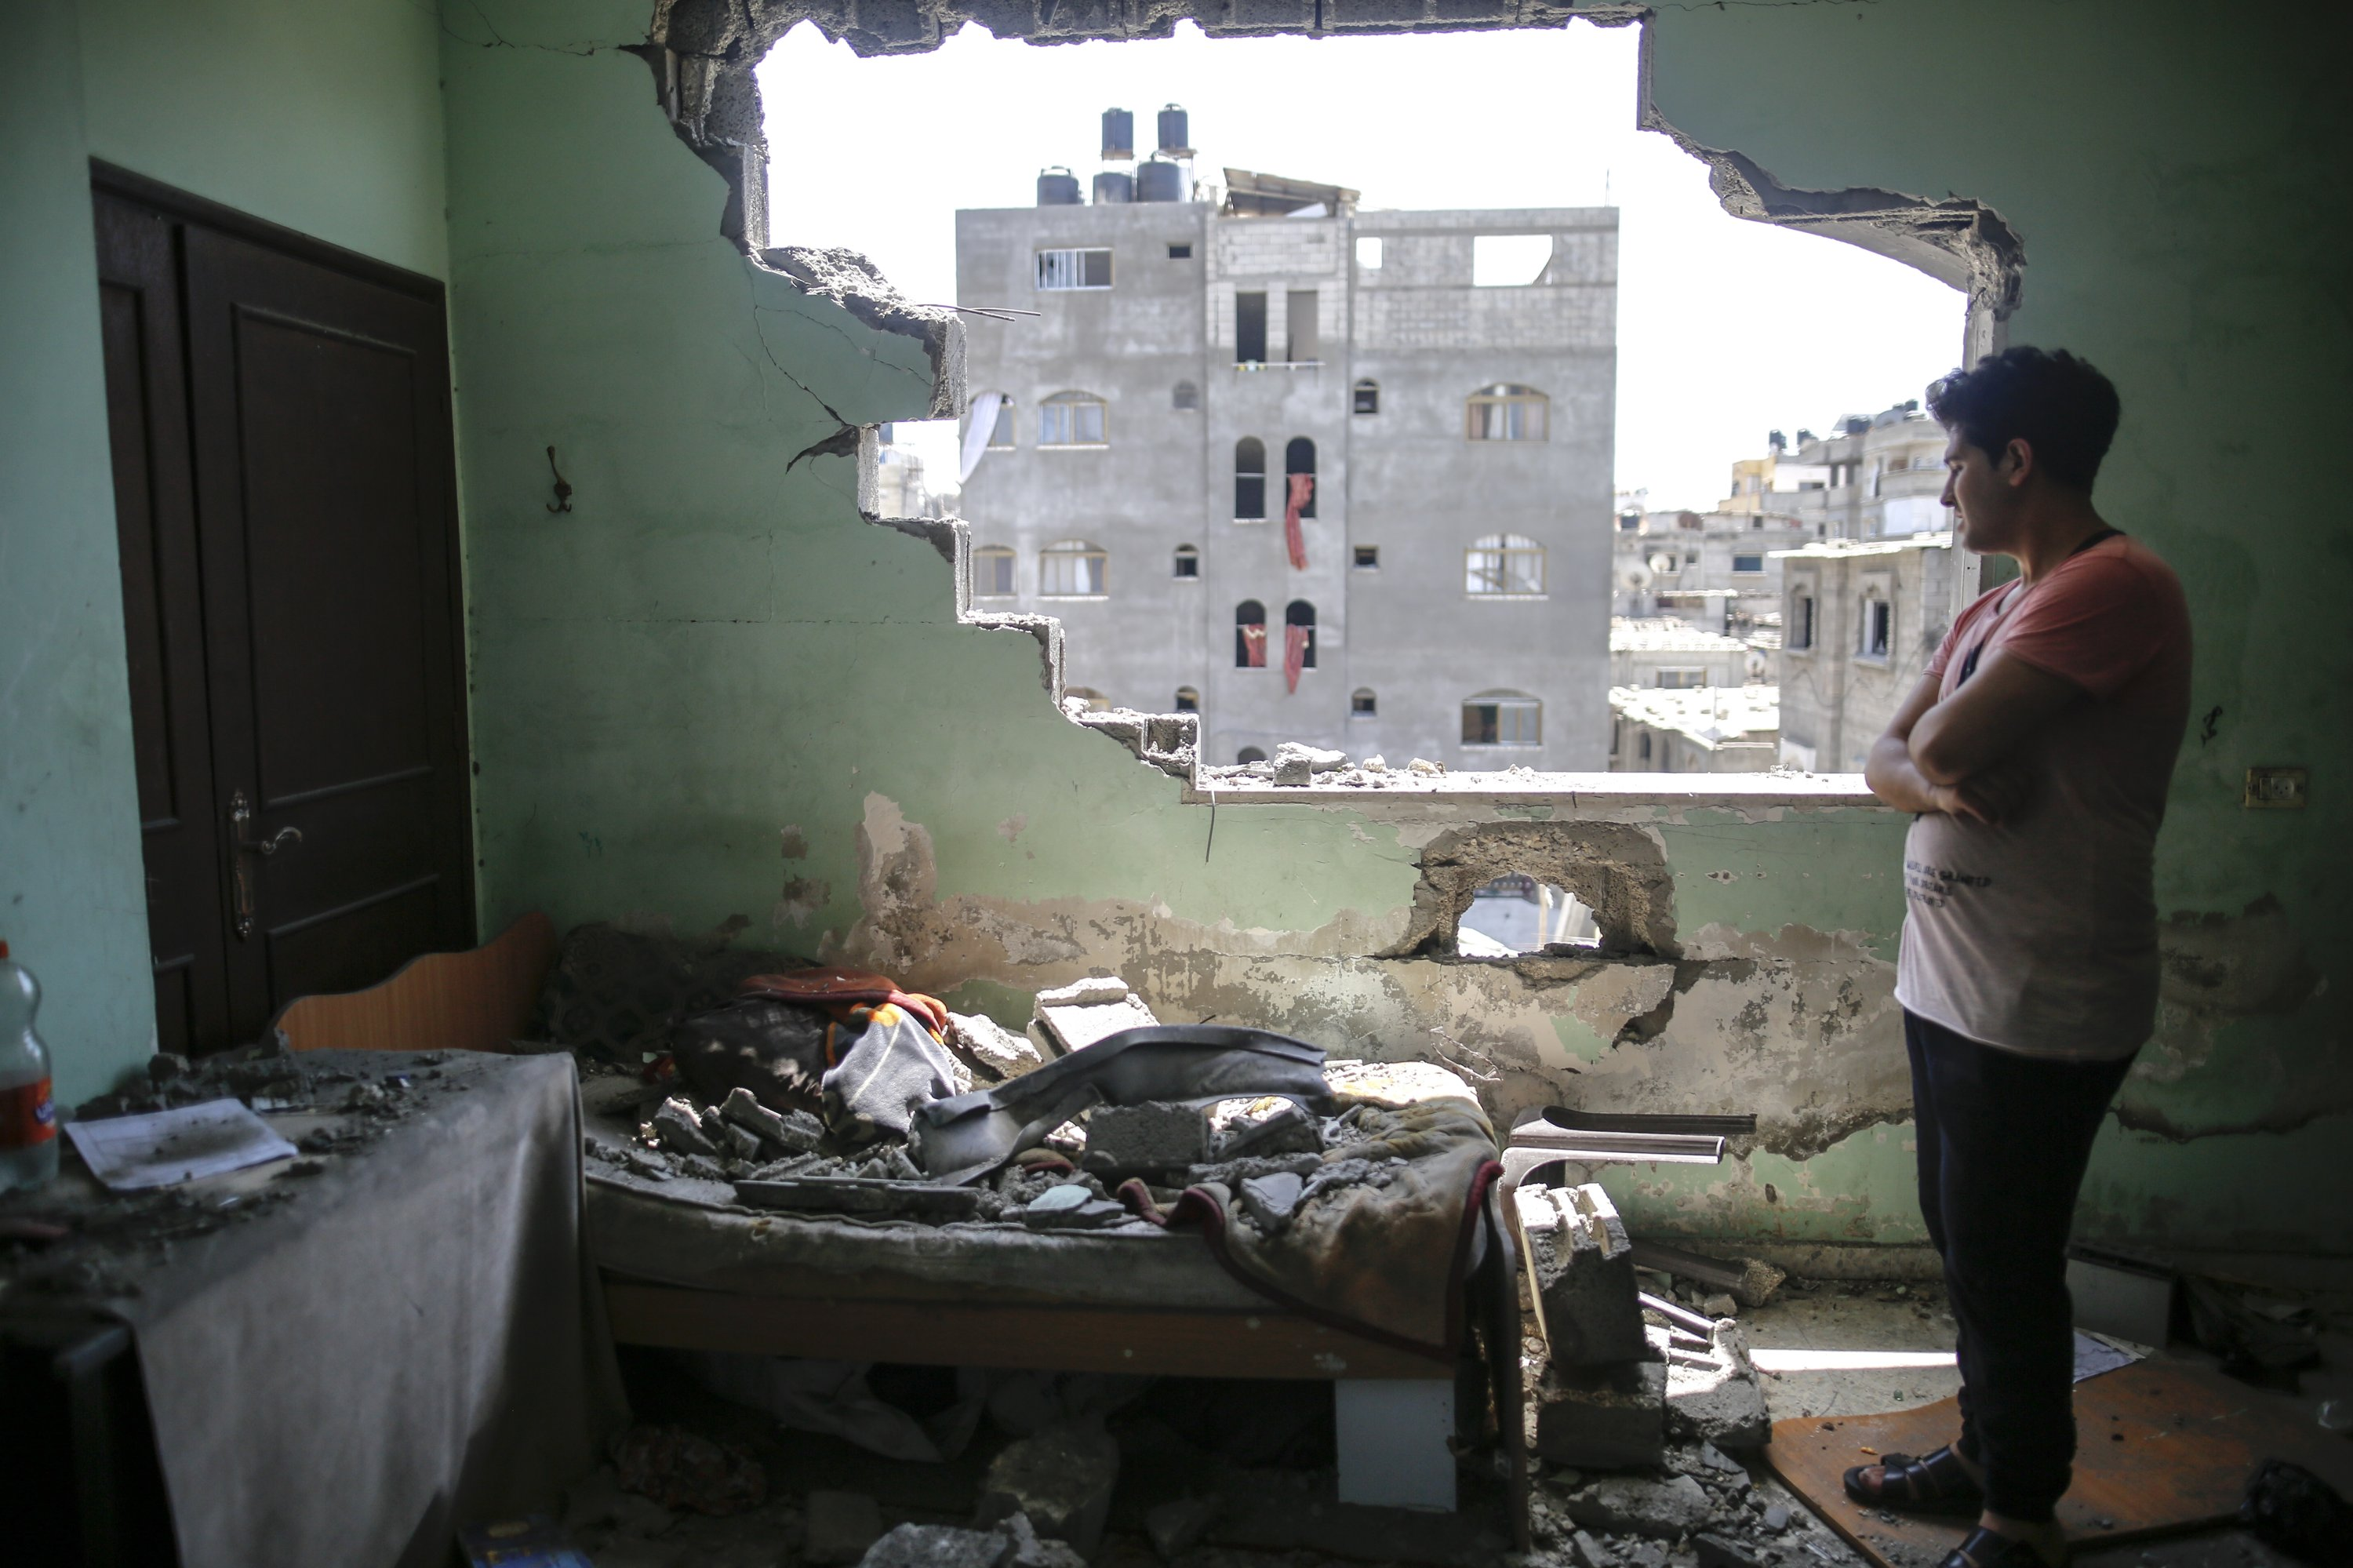 A Palestinian man inspects the damage in his room after Israeli airstrikes on his neighborhood in Gaza Strip, Palestine, May 20, 2021. (Photo by Getty Images)